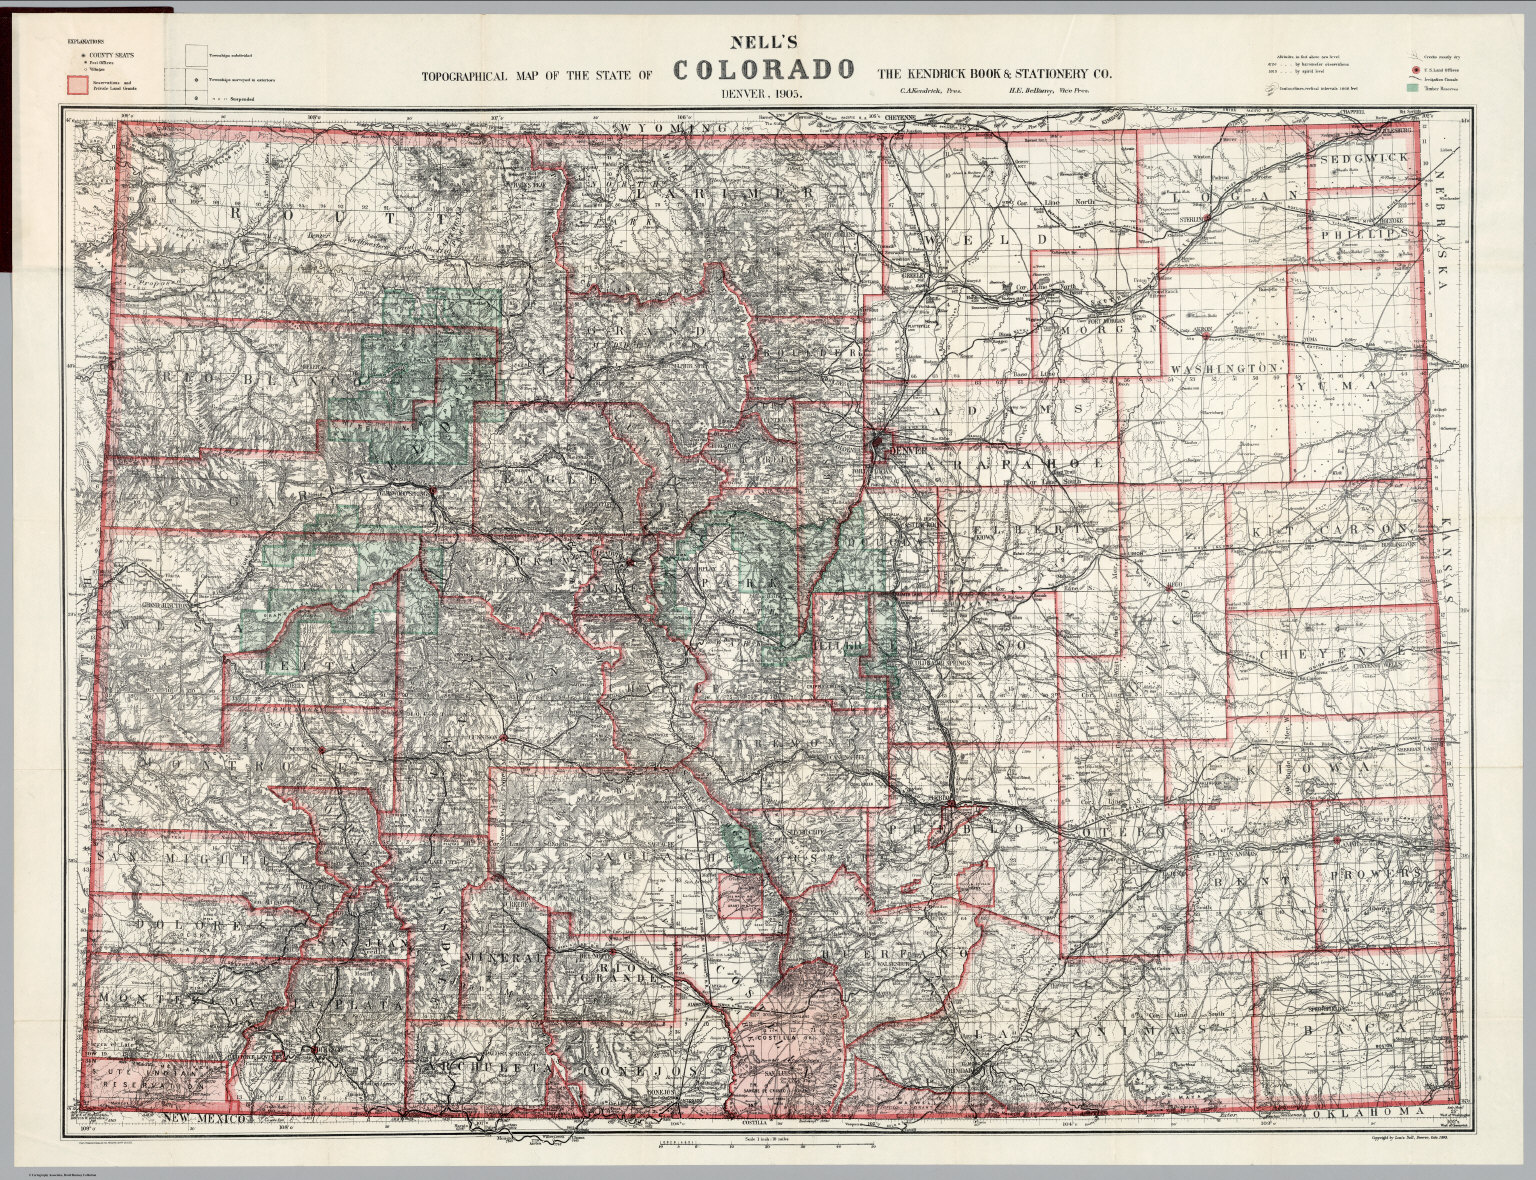 Topographical Map Of The State Of Colorado David Rumsey - Elevation map of colorado